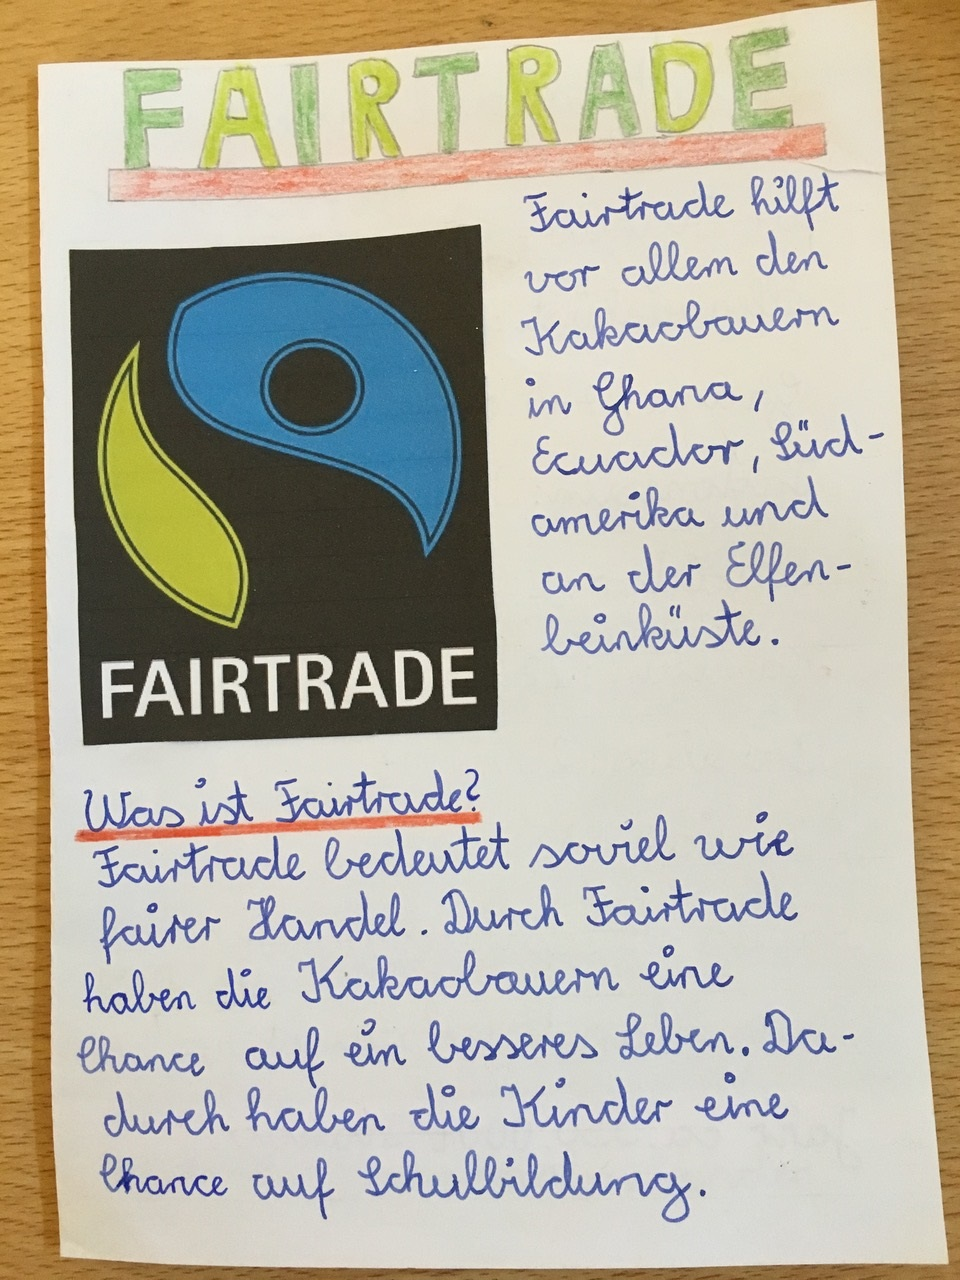 Fairtrade%20hoch.jpg